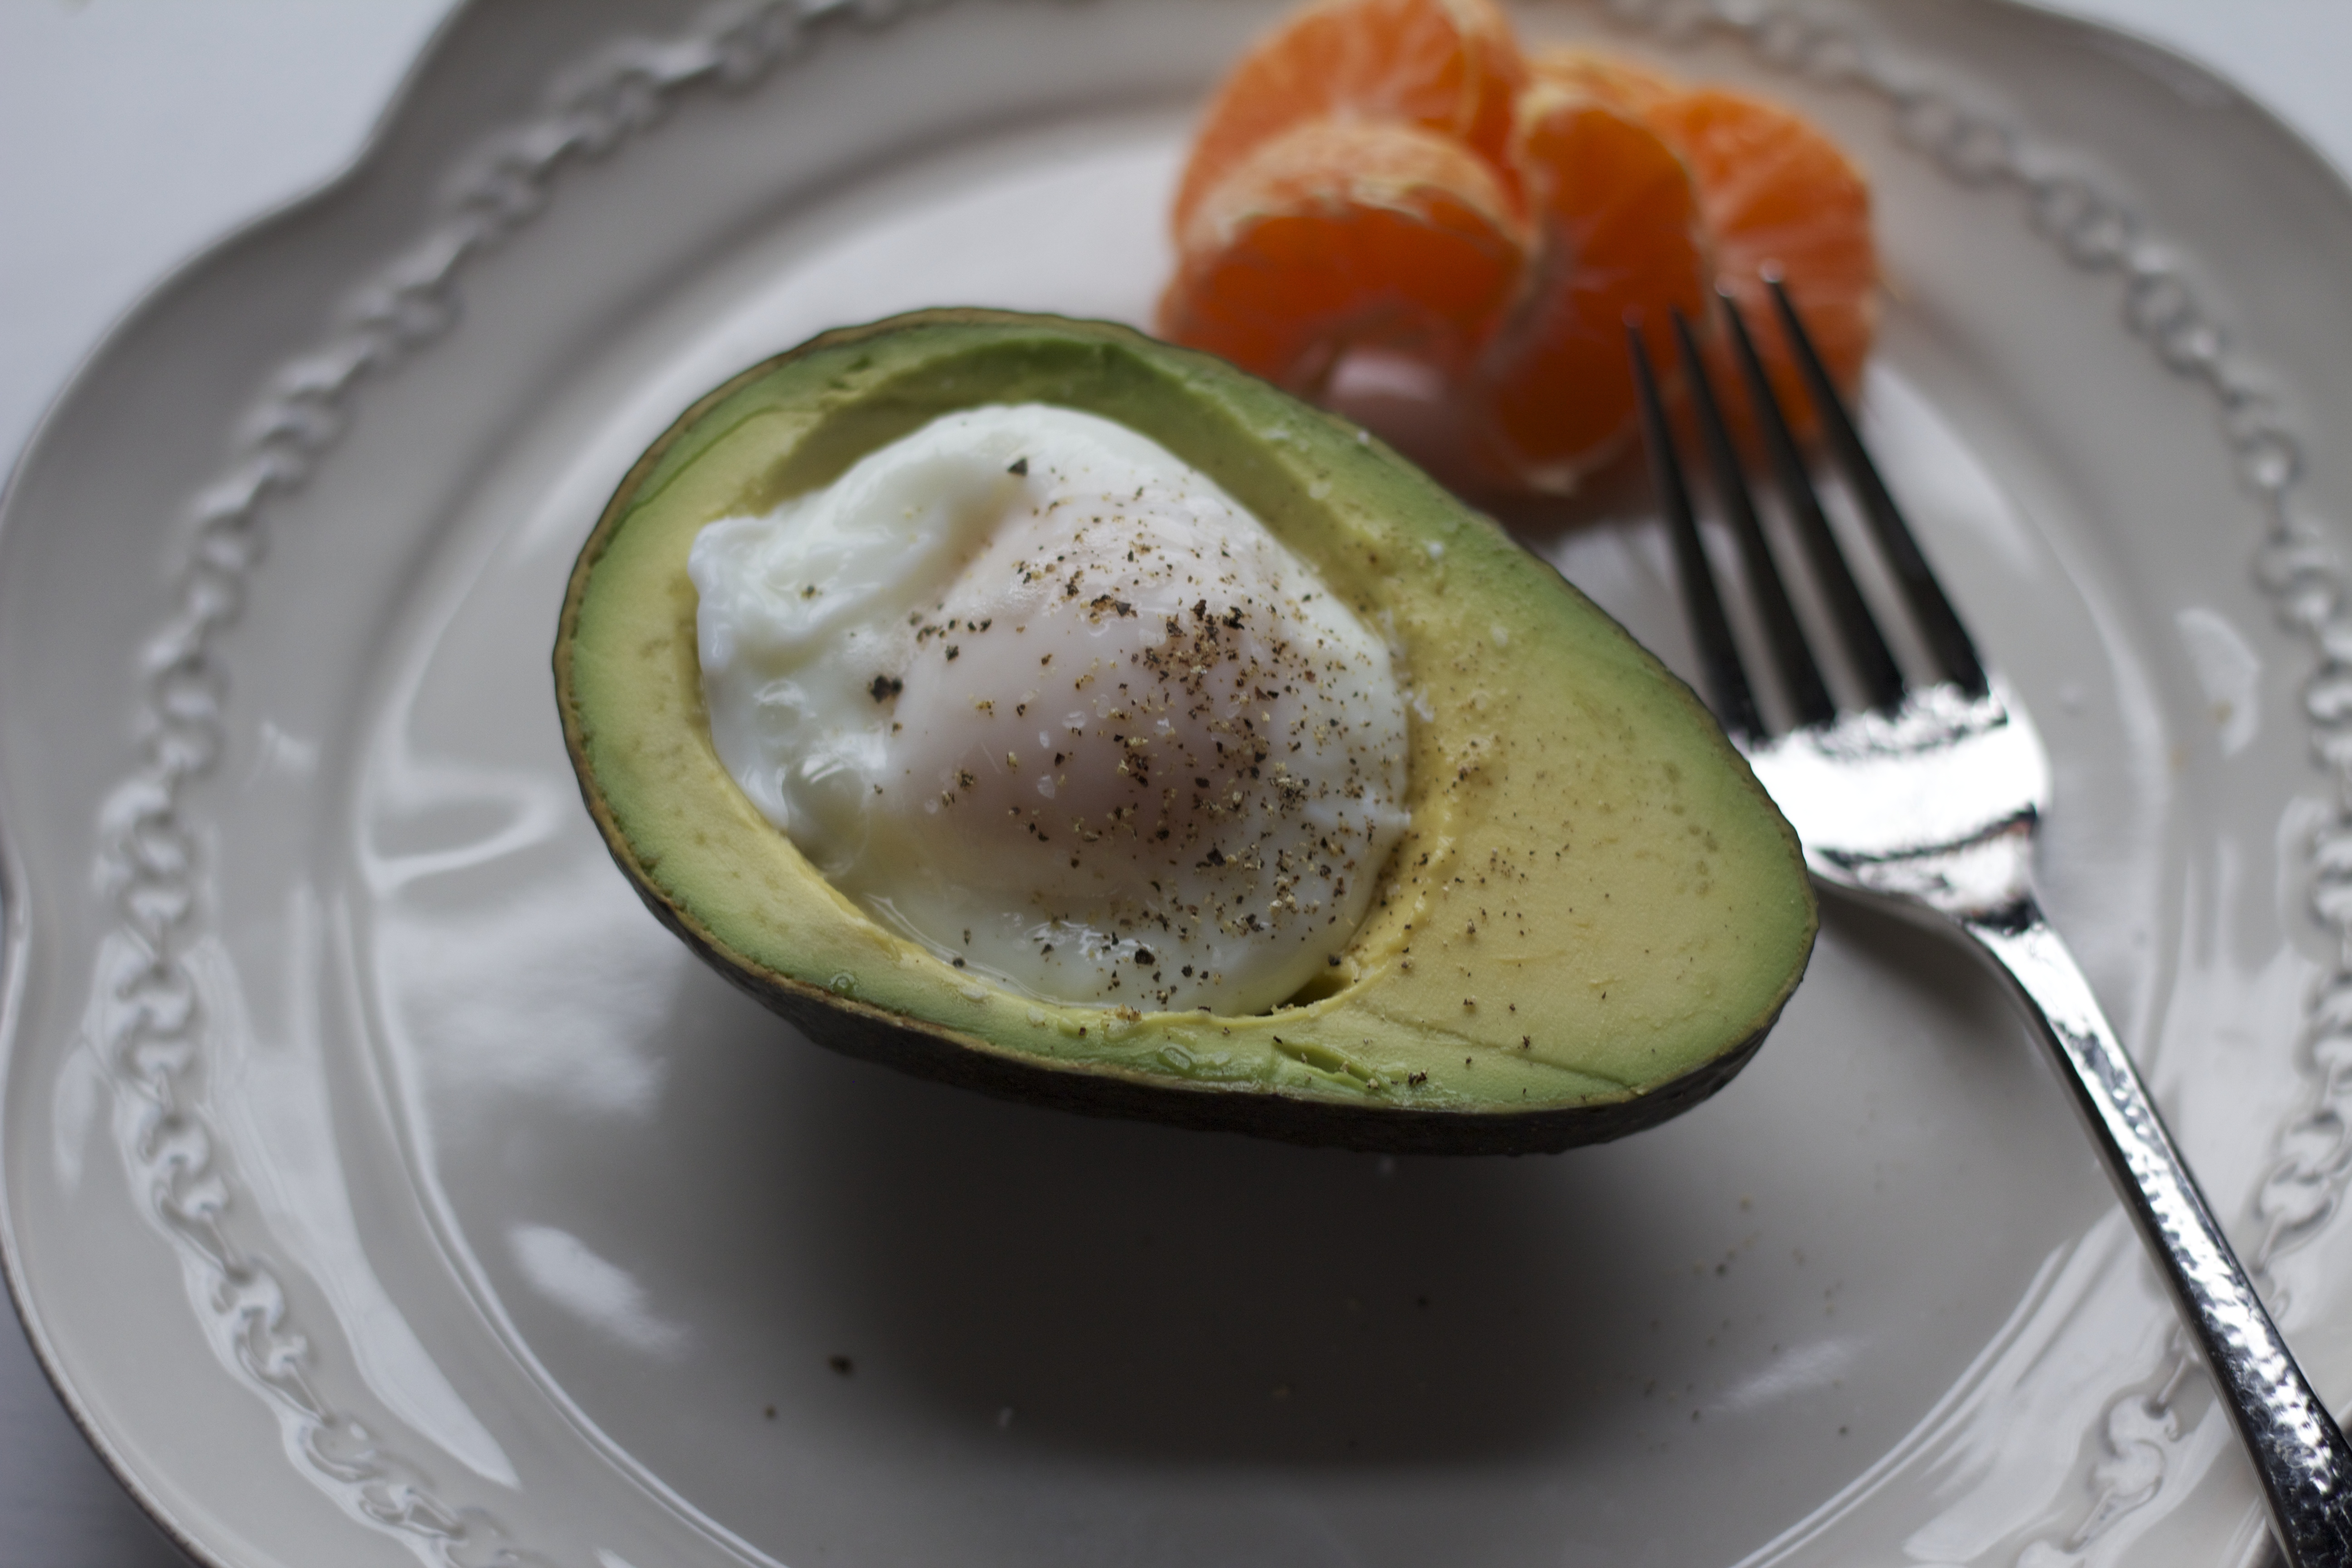 ... egg in an avocado i personally would rather either have eggs with